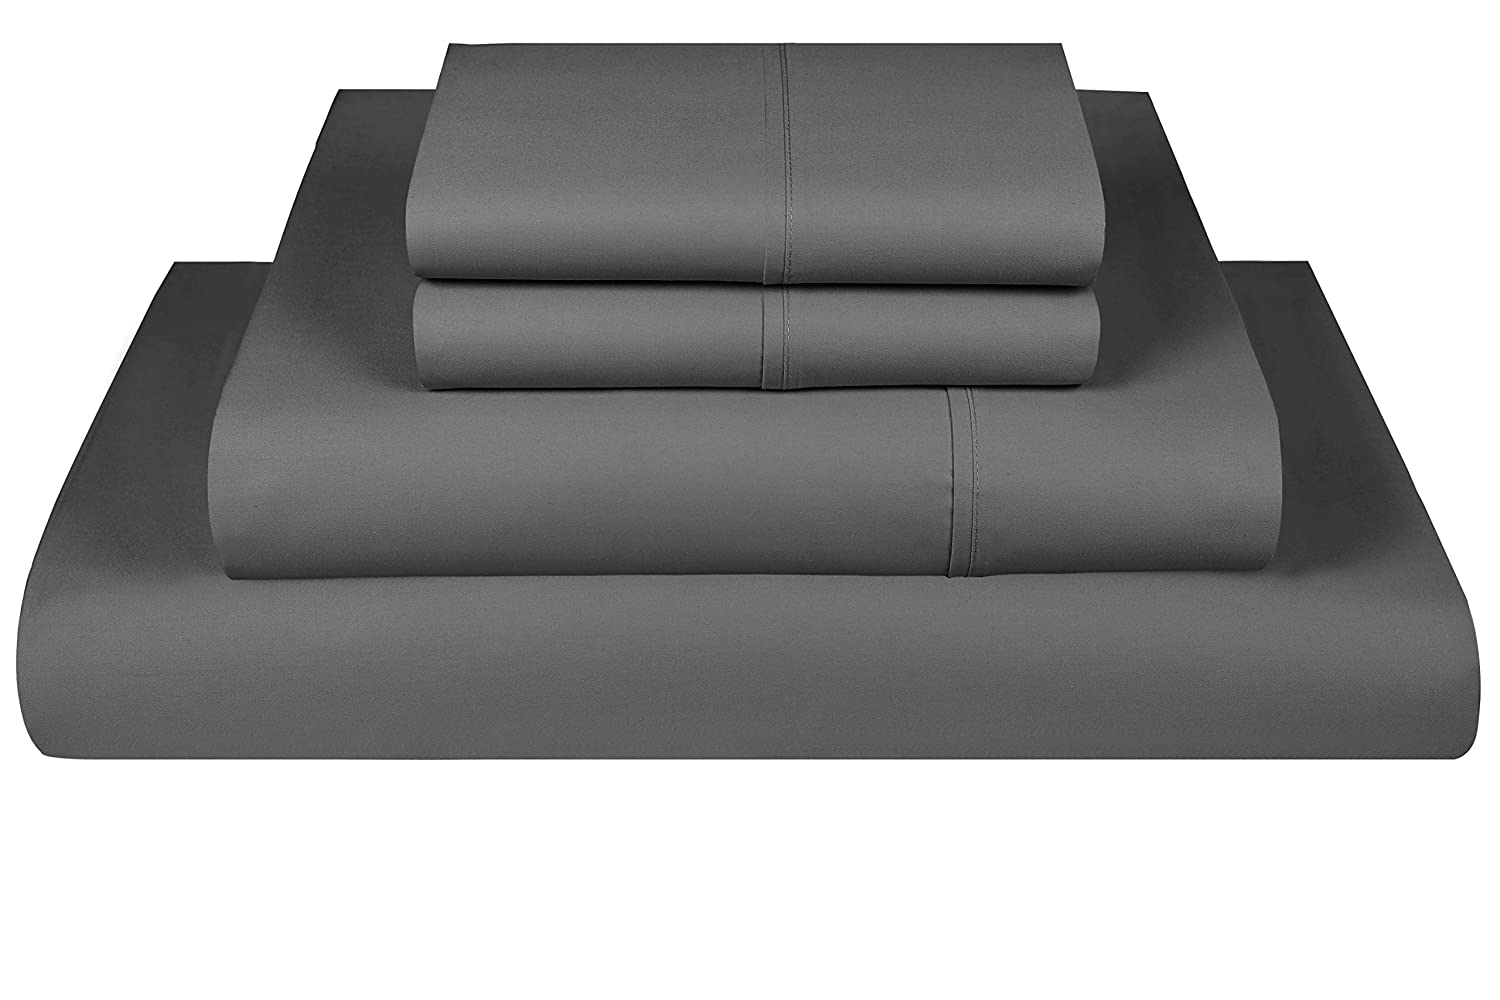 Threadmill Home Linen 600 Thread Count 100% Cotton Sheets, Dark Grey Cotton Twin XL Sheets 3 Piece Set, ELS Cotton Bedsheets, Soft & Silky Sateen Weave Fits Mattress Up to 17'' Deep Pocket